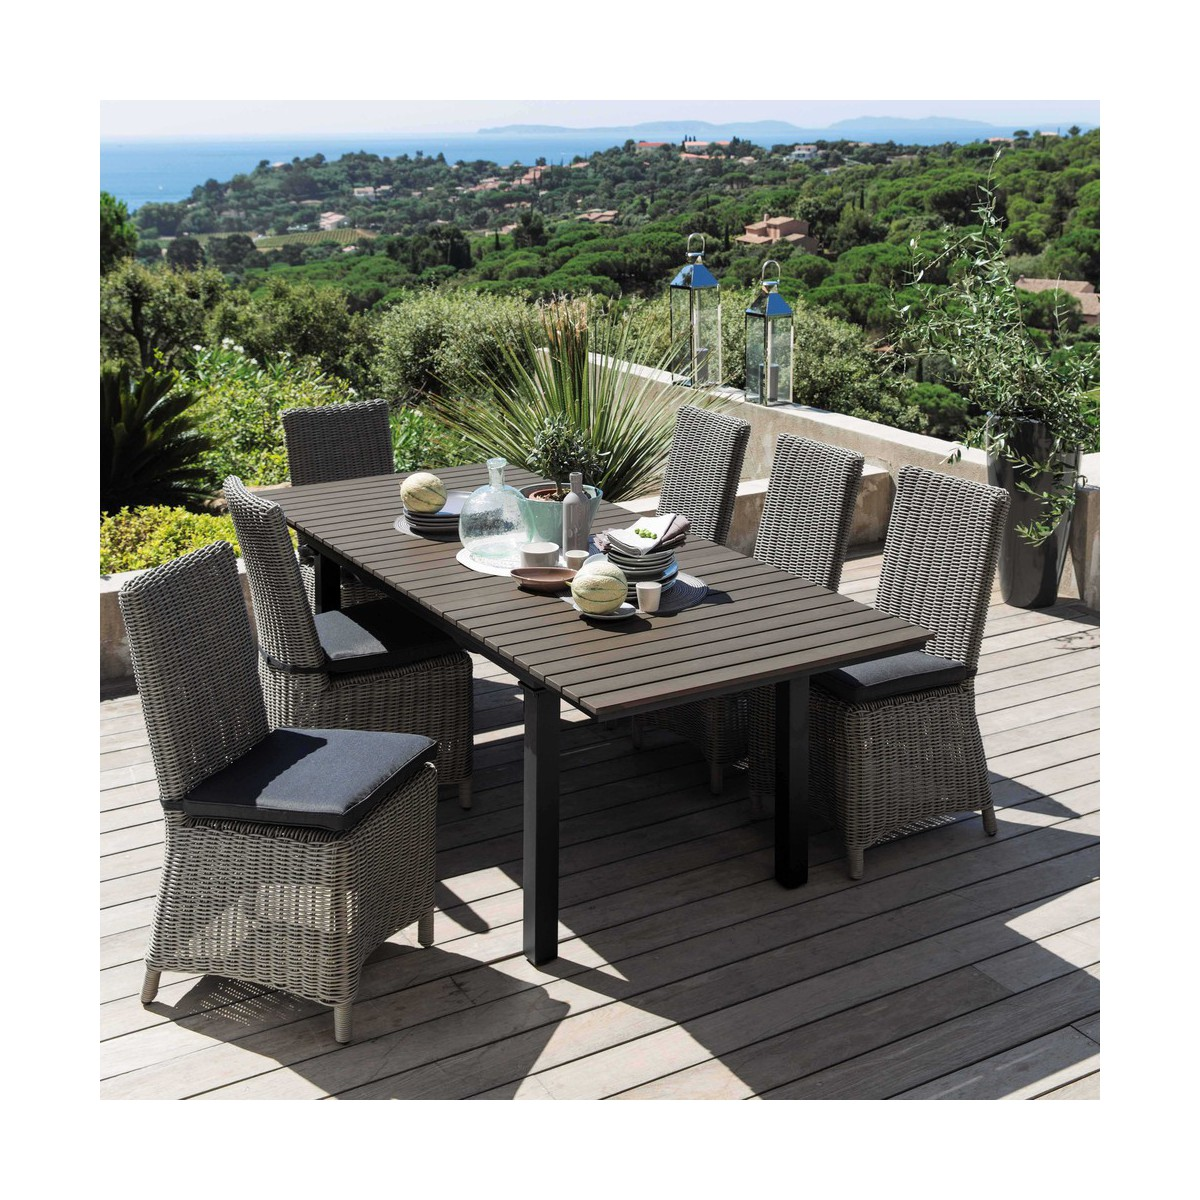 Salon De Jardin Alu Composite. Excellent Sduisant Table De Jardin ...